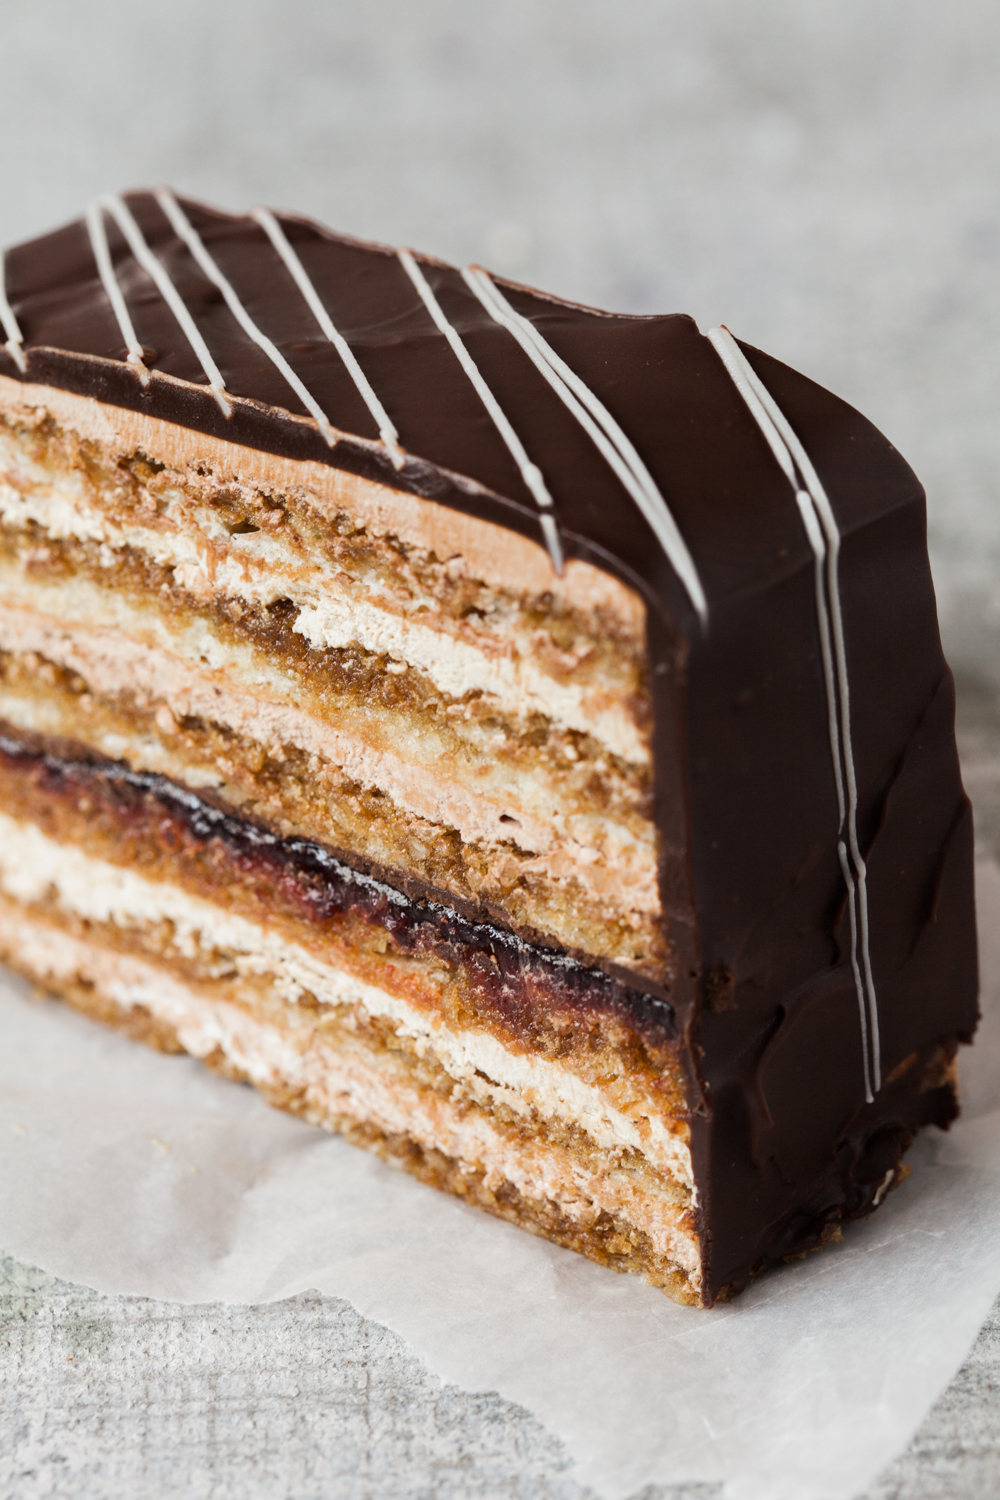 Clichy: This is a seven layer coffee brushed biscuit, layered with coffee and chocolate buttercream, a hint of raspberry, covered in ganache.  The clichy can also be ordered as a cake to feed 6 to 8 people.